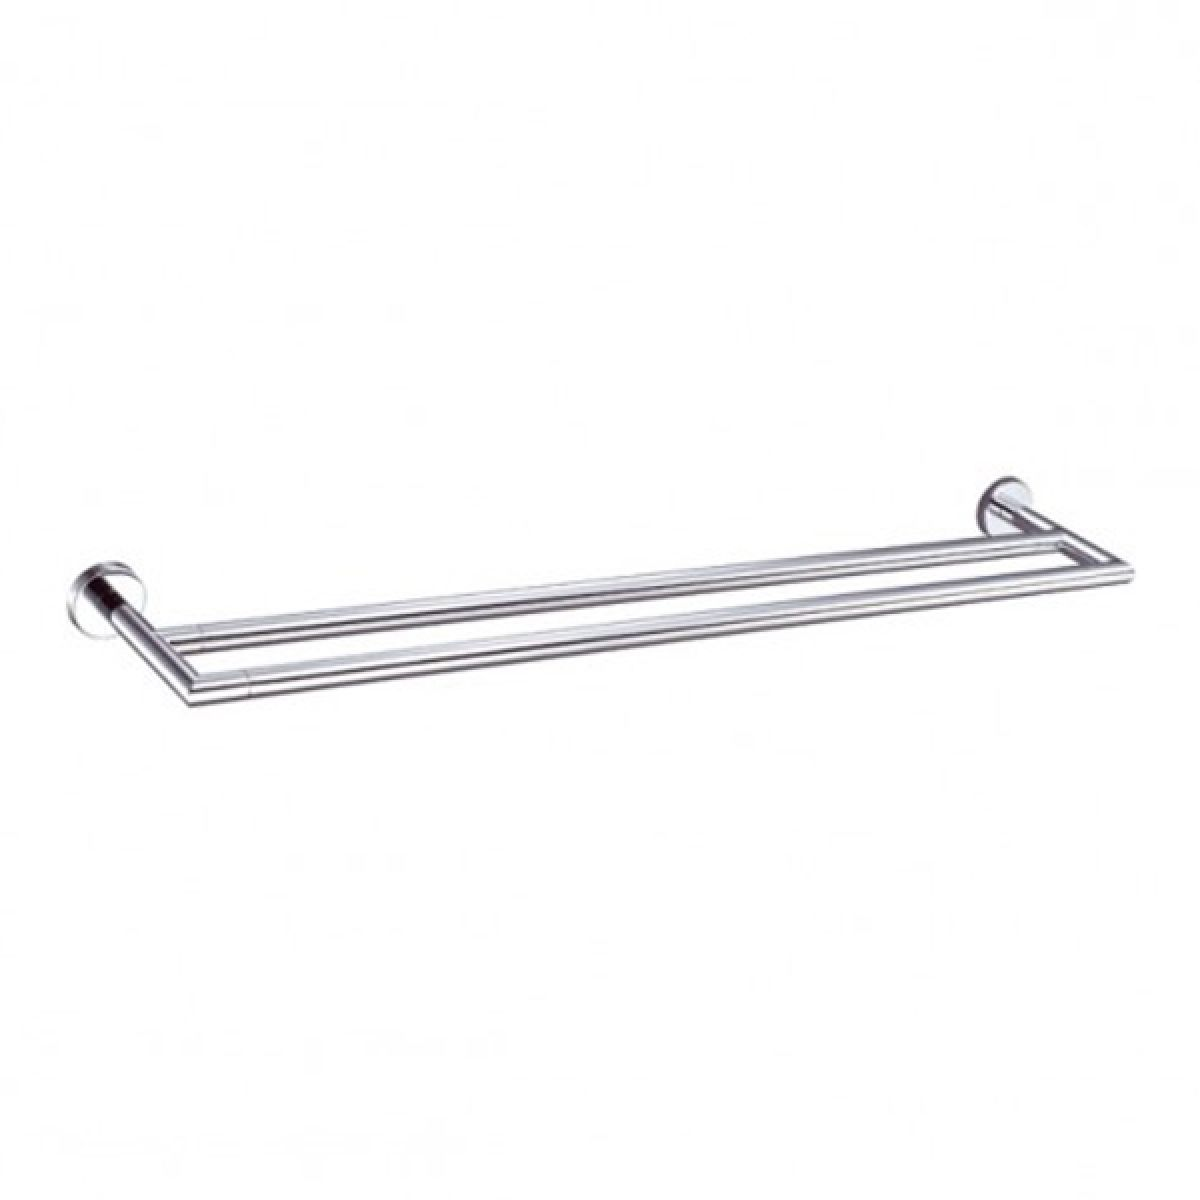 Vitra Minimax Double Towel Rail 530mm